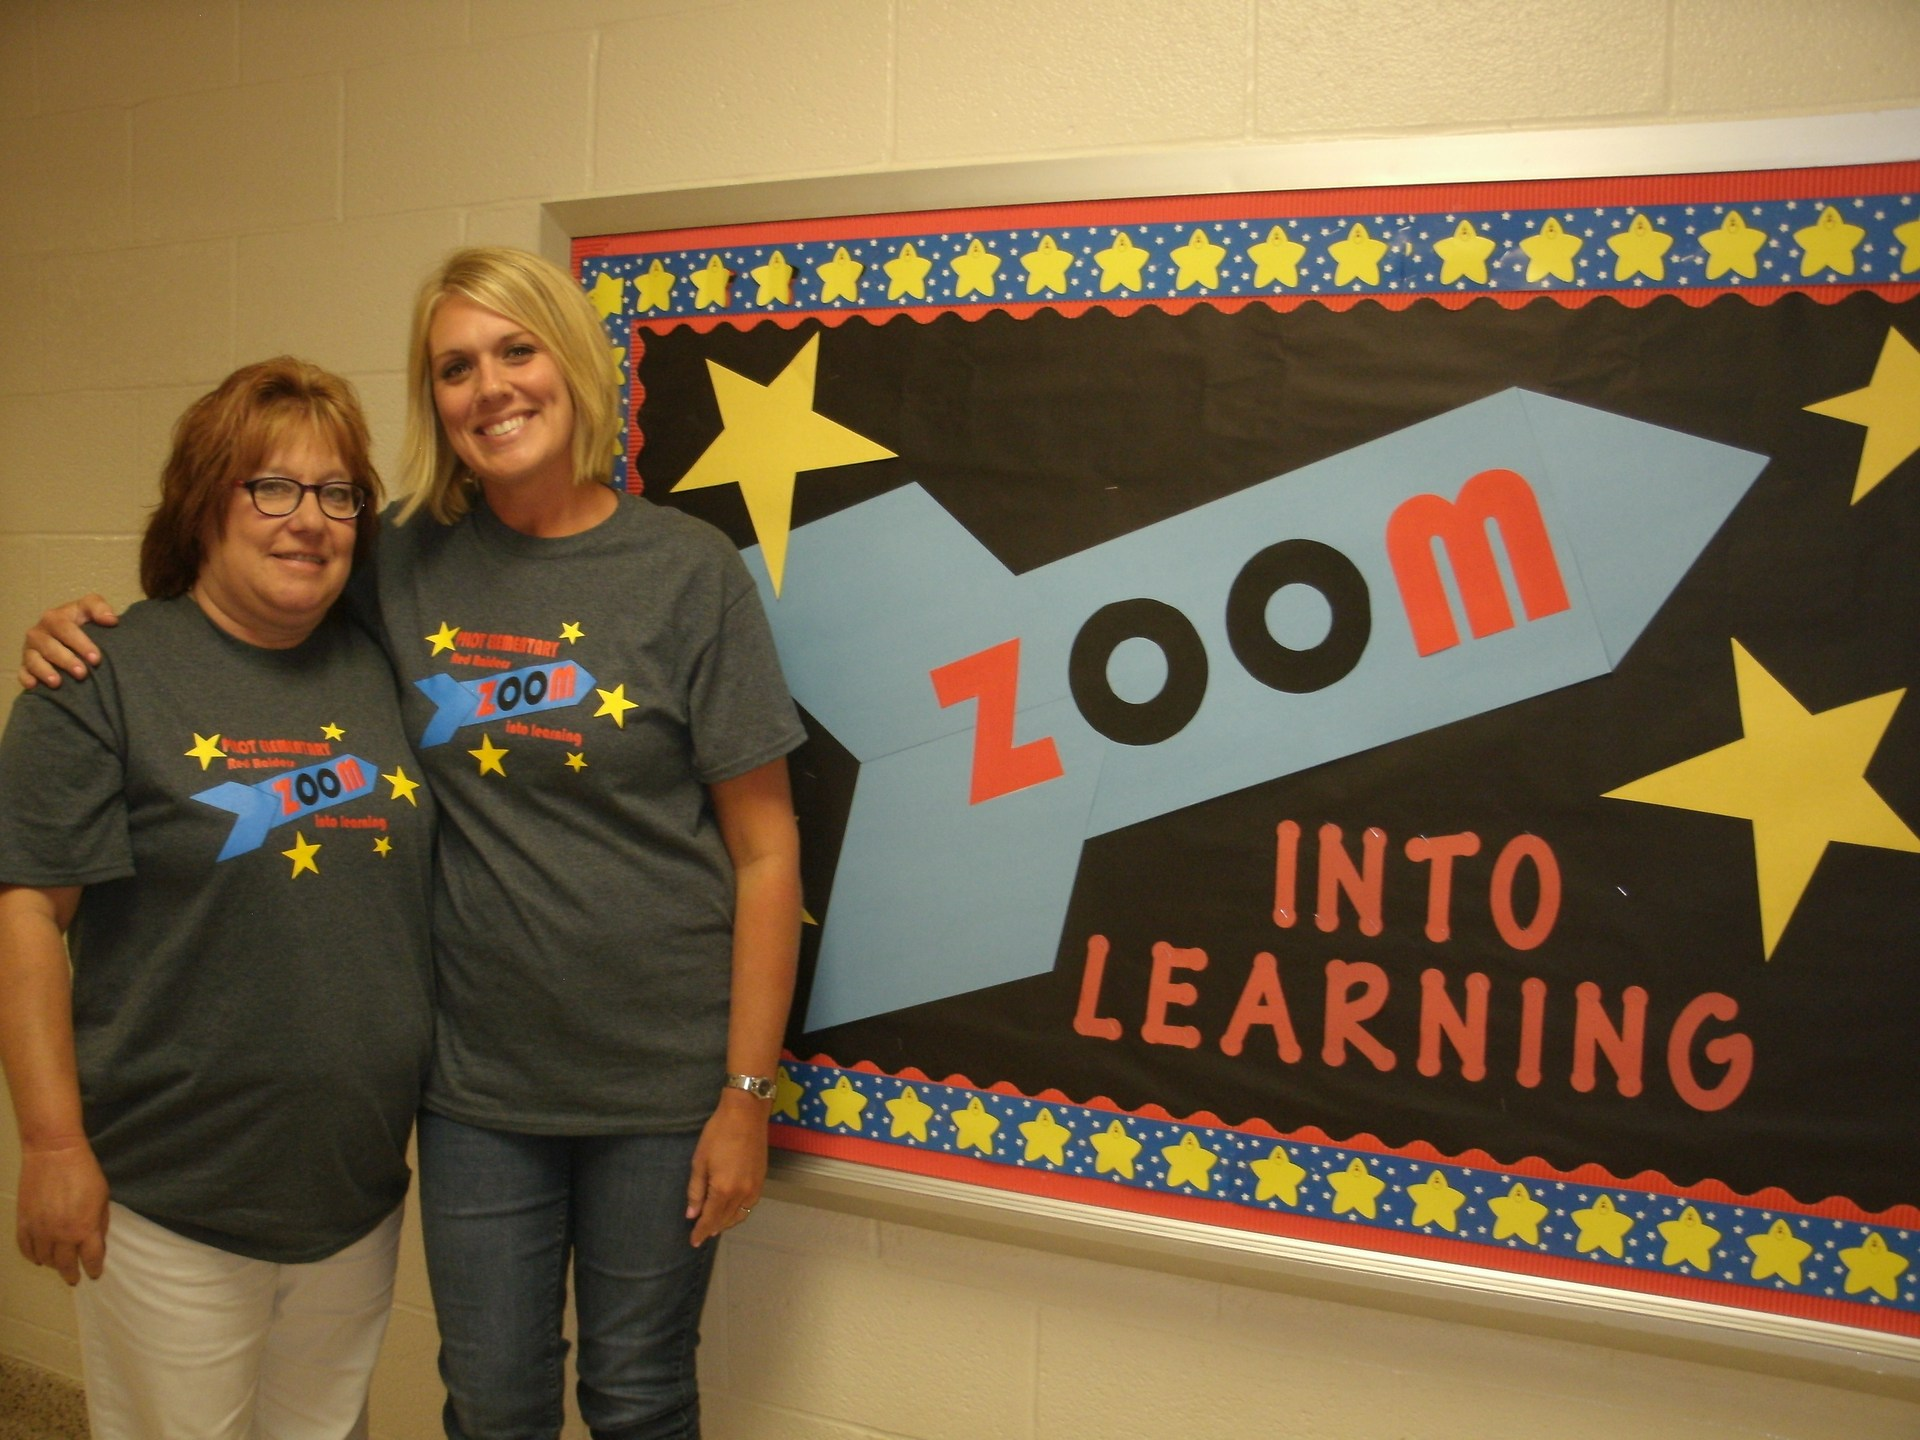 Two fourth grade teachers are standing in front of a bulletin board.